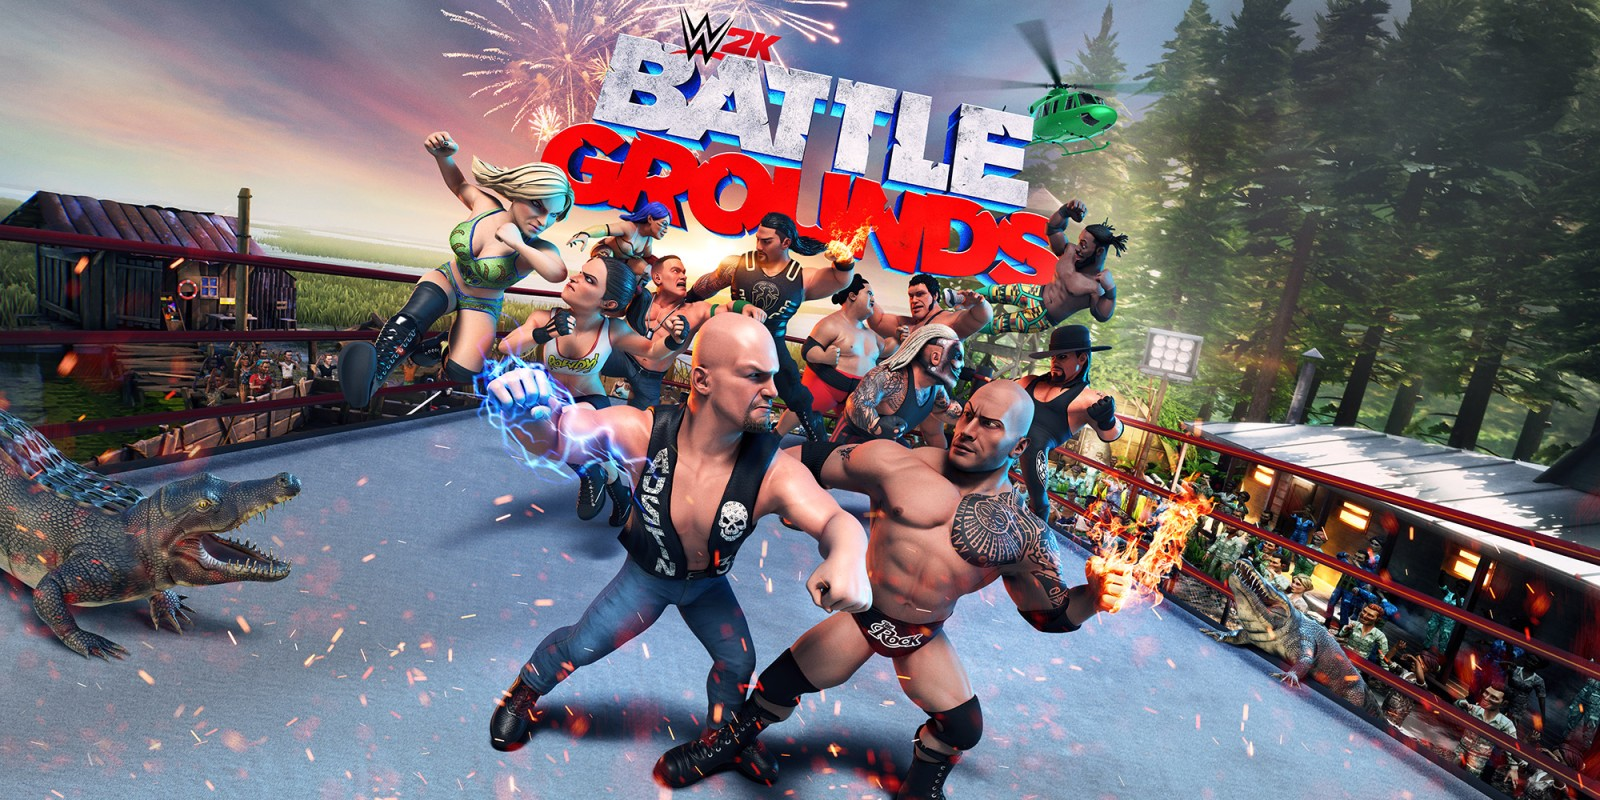 Last Game You Finished And Your Four-ghts - Page 26 H2x1_NSwitch_WWEBattlegrounds_image1600w